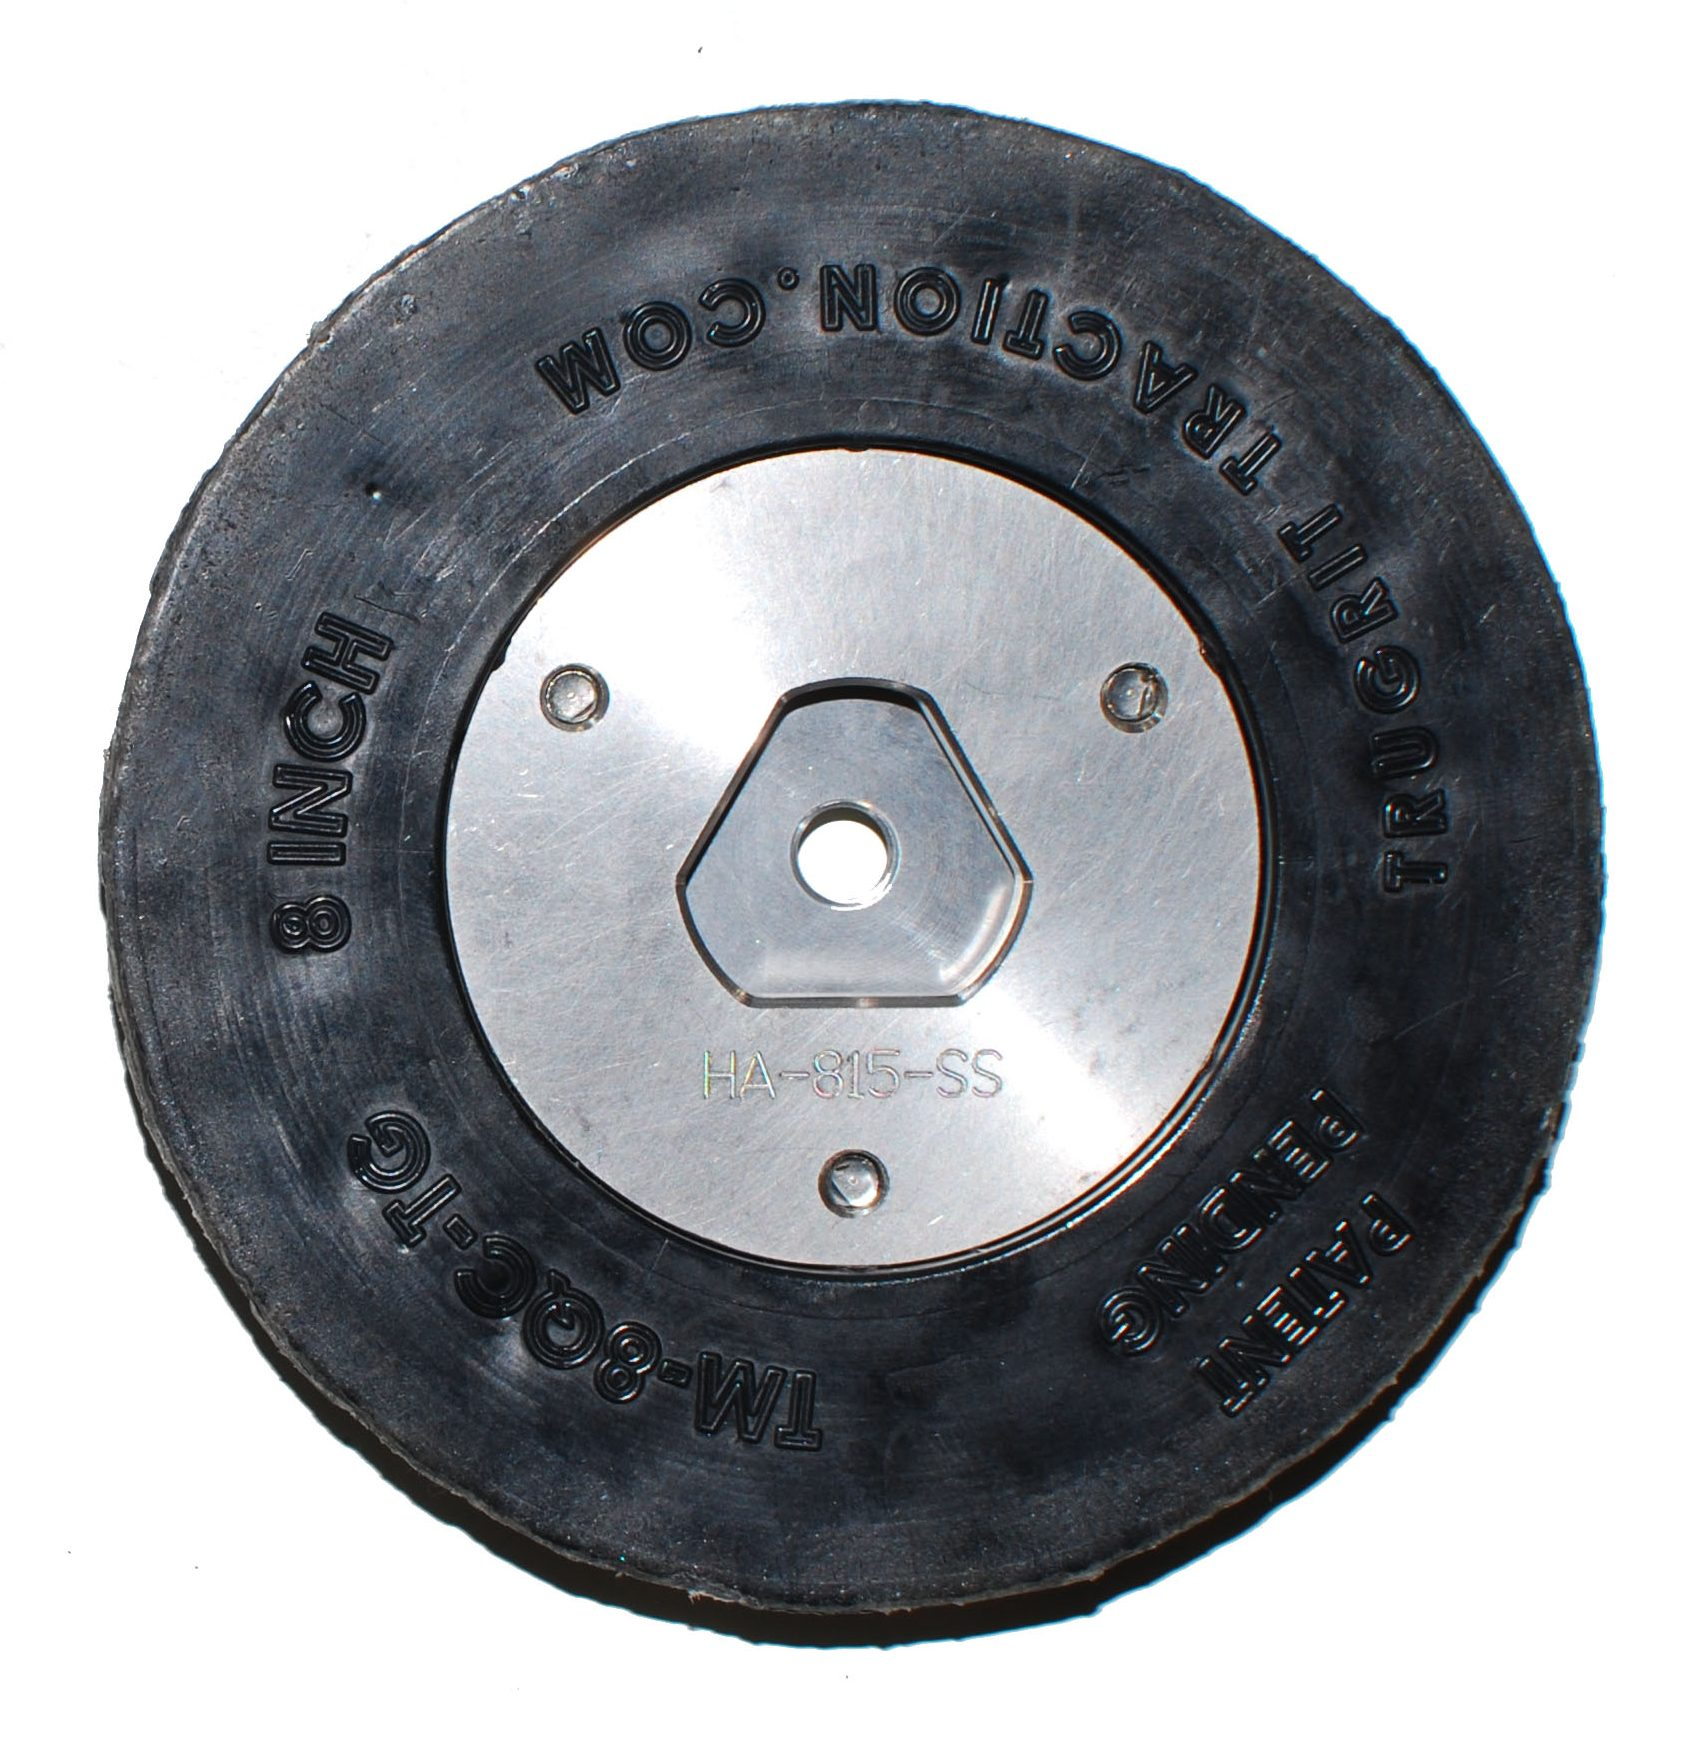 tg cues wheel parts buy online